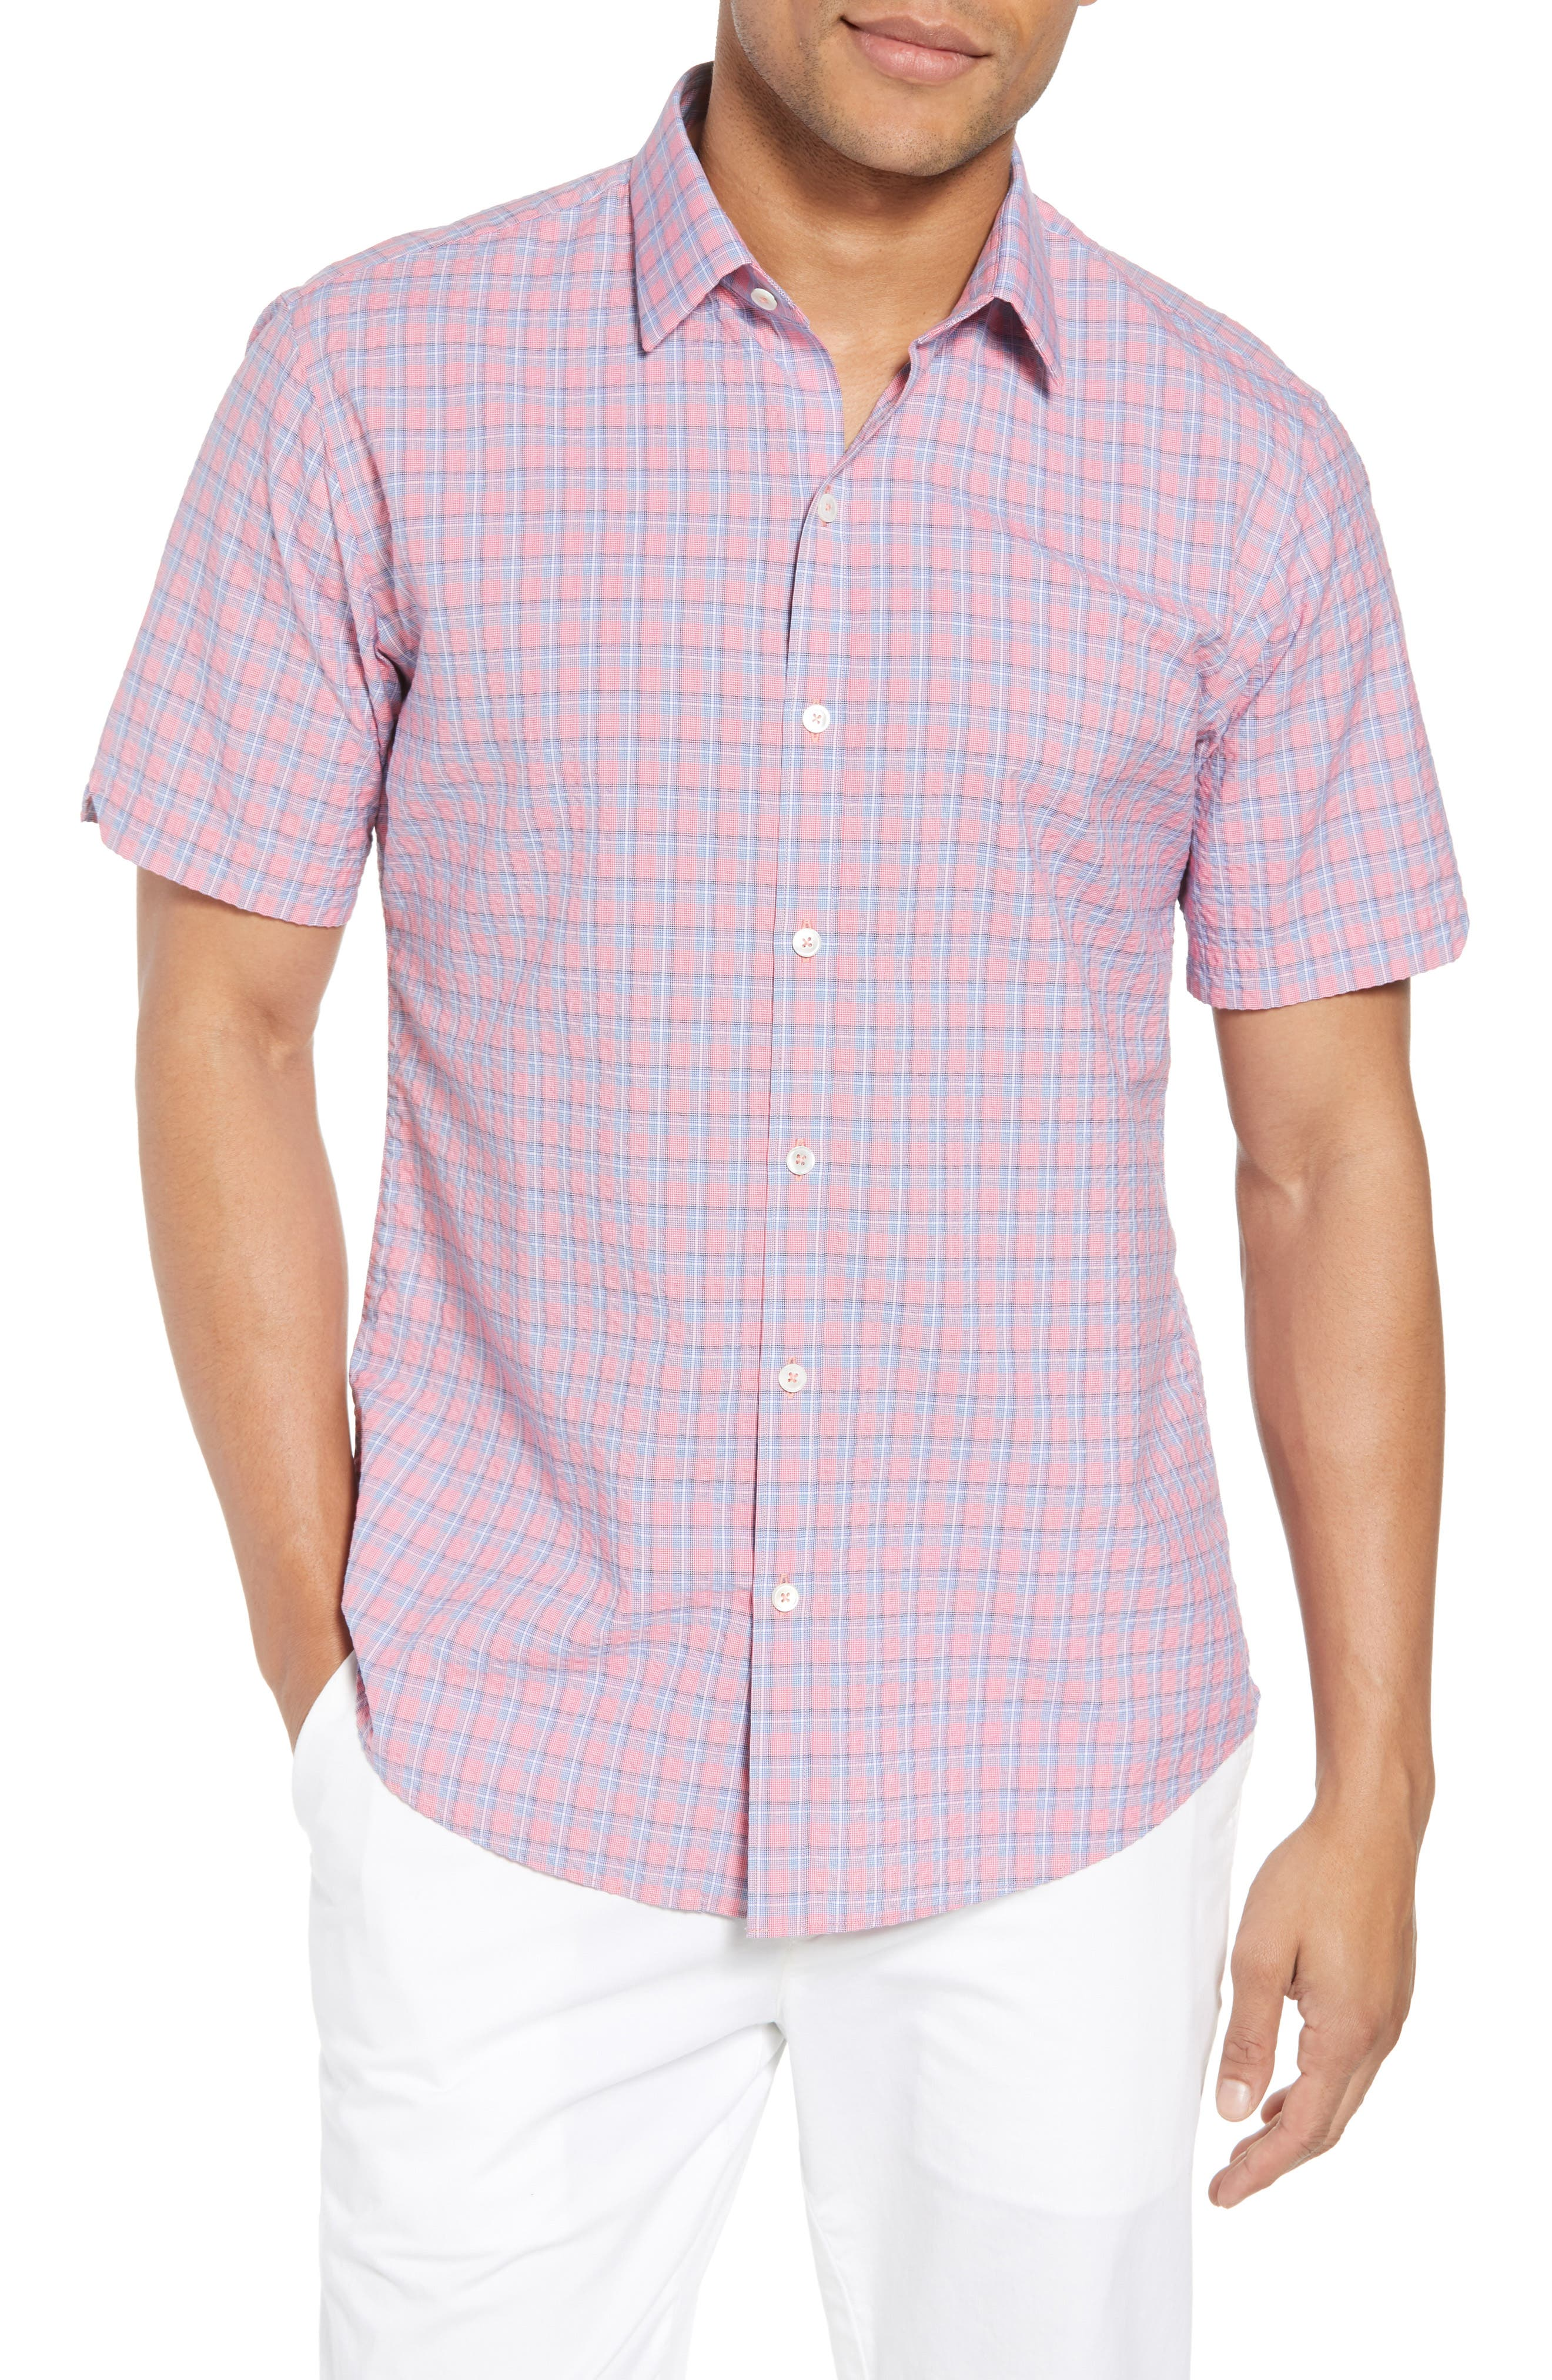 Luna Trim Fit Seersucker Sport Shirt,                             Main thumbnail 1, color,                             FADED RED